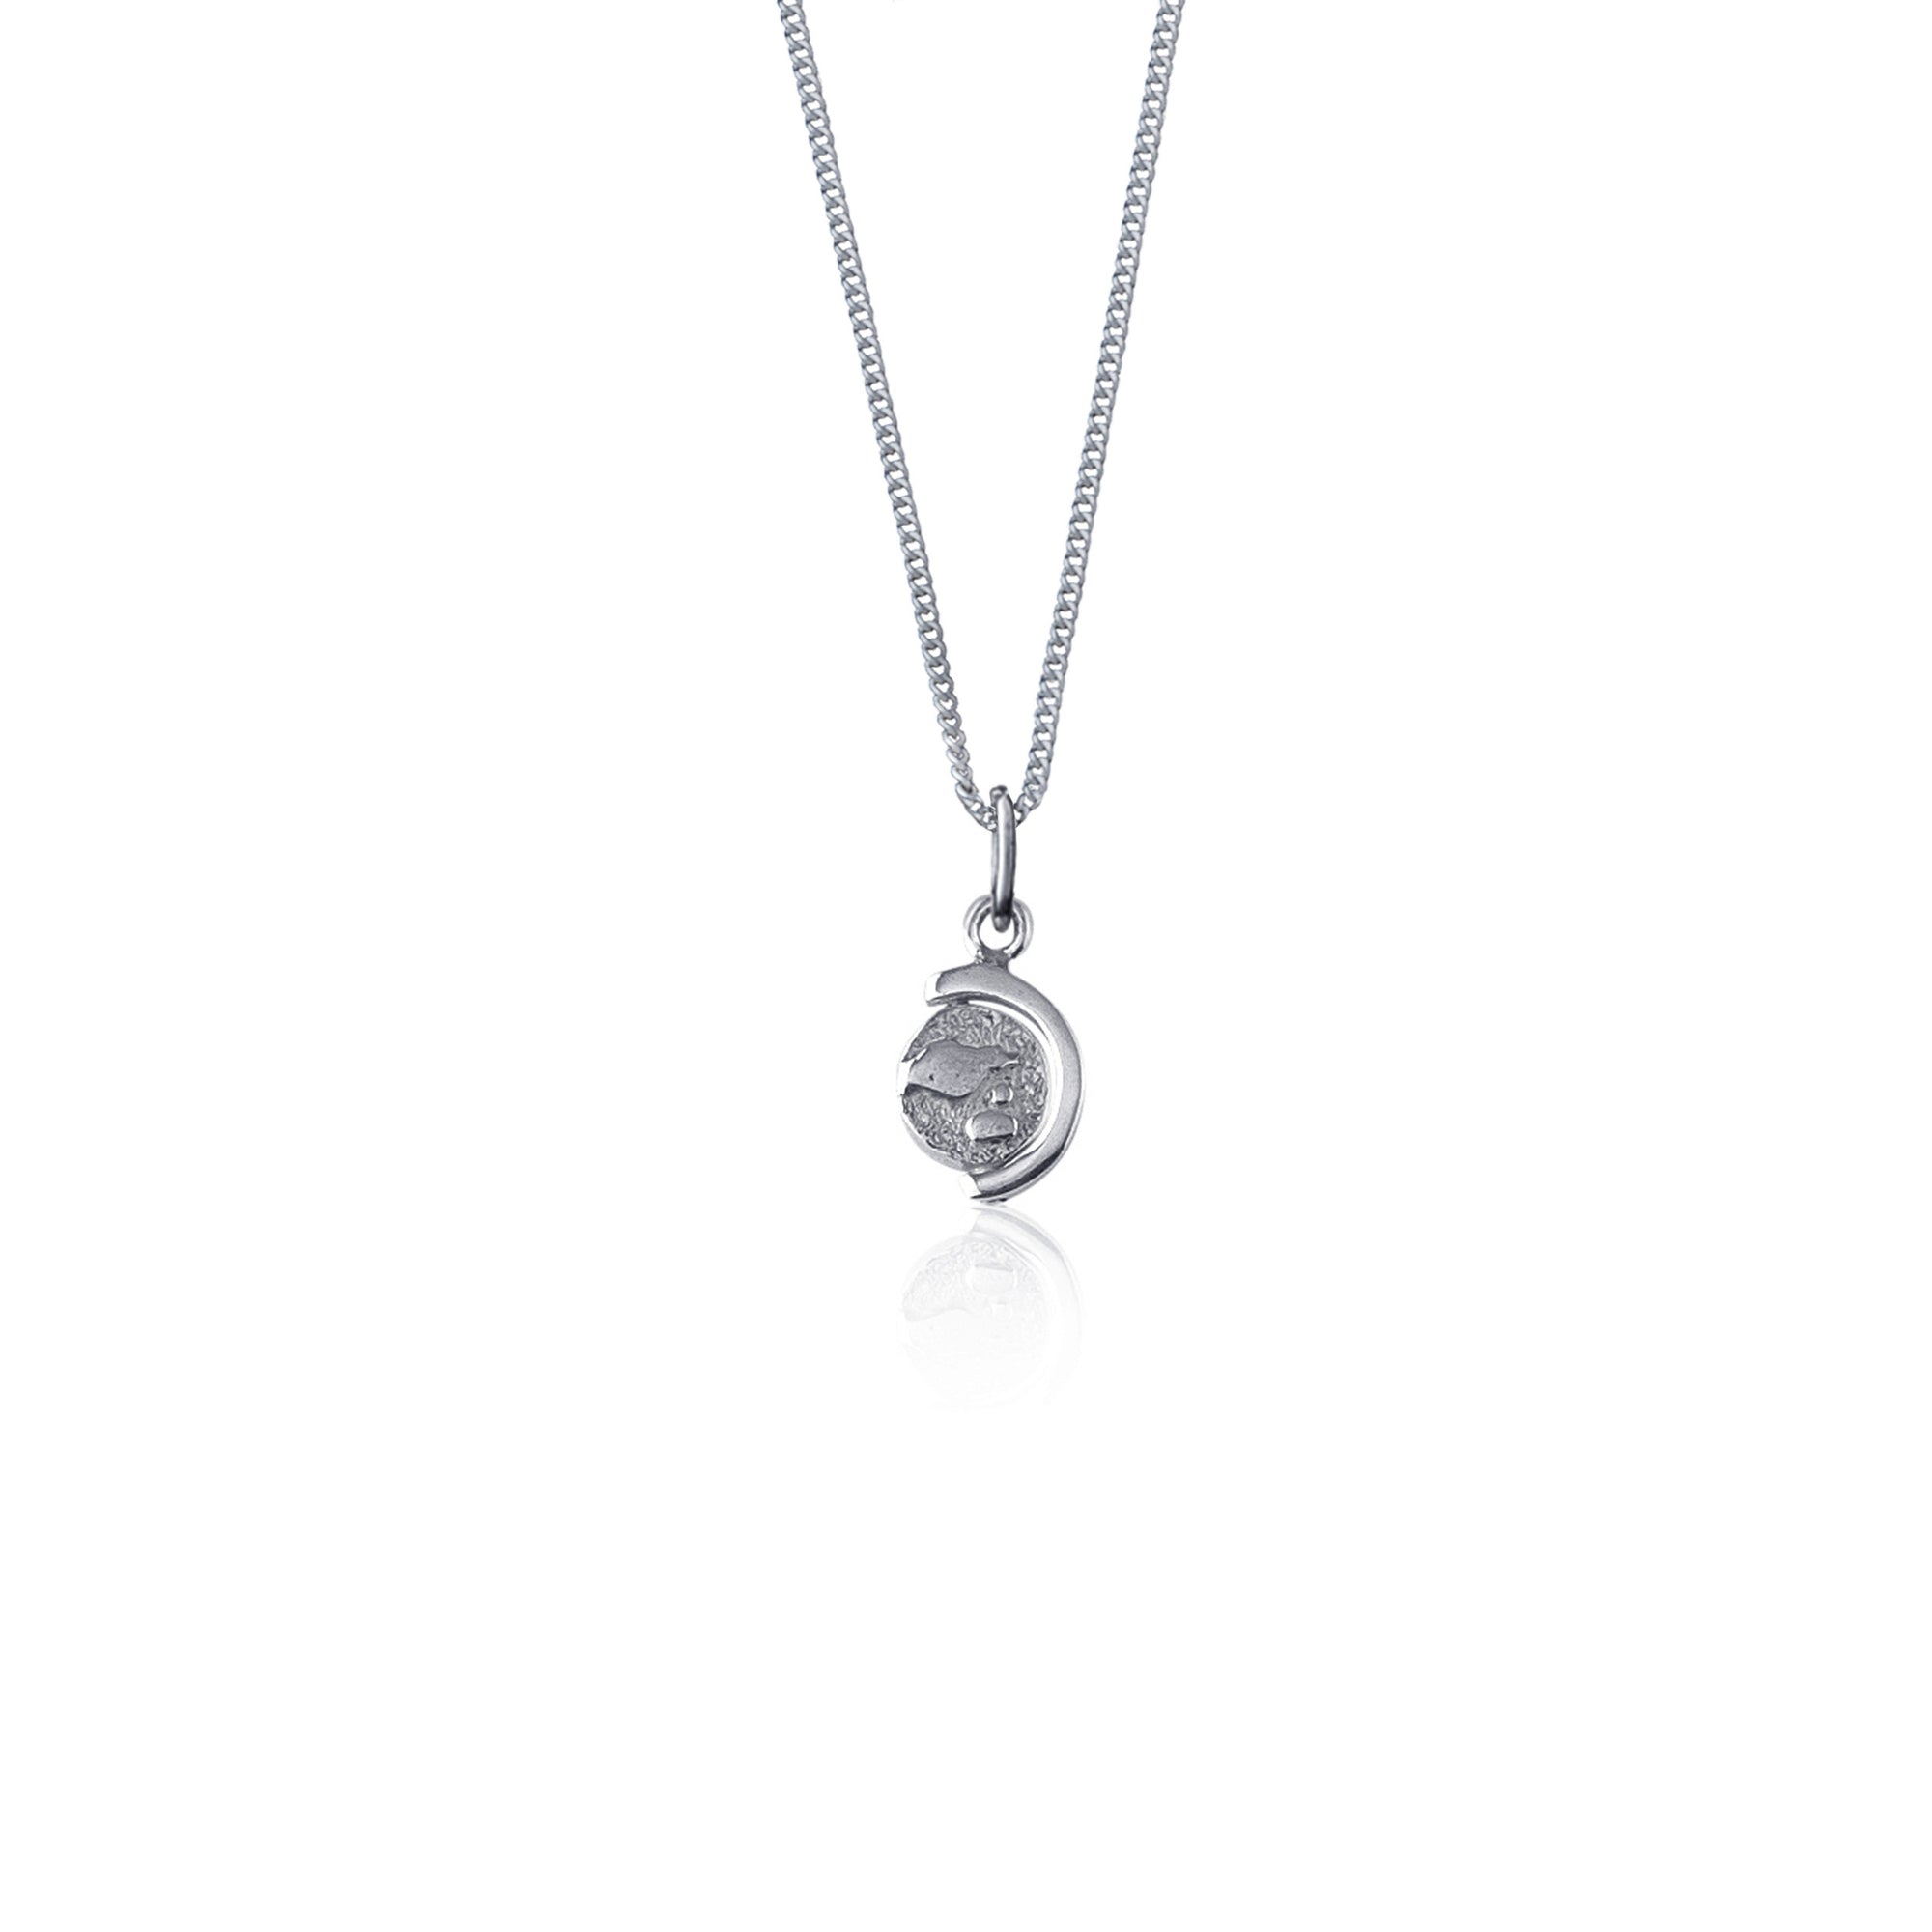 Globetrotter Necklace (Silver)